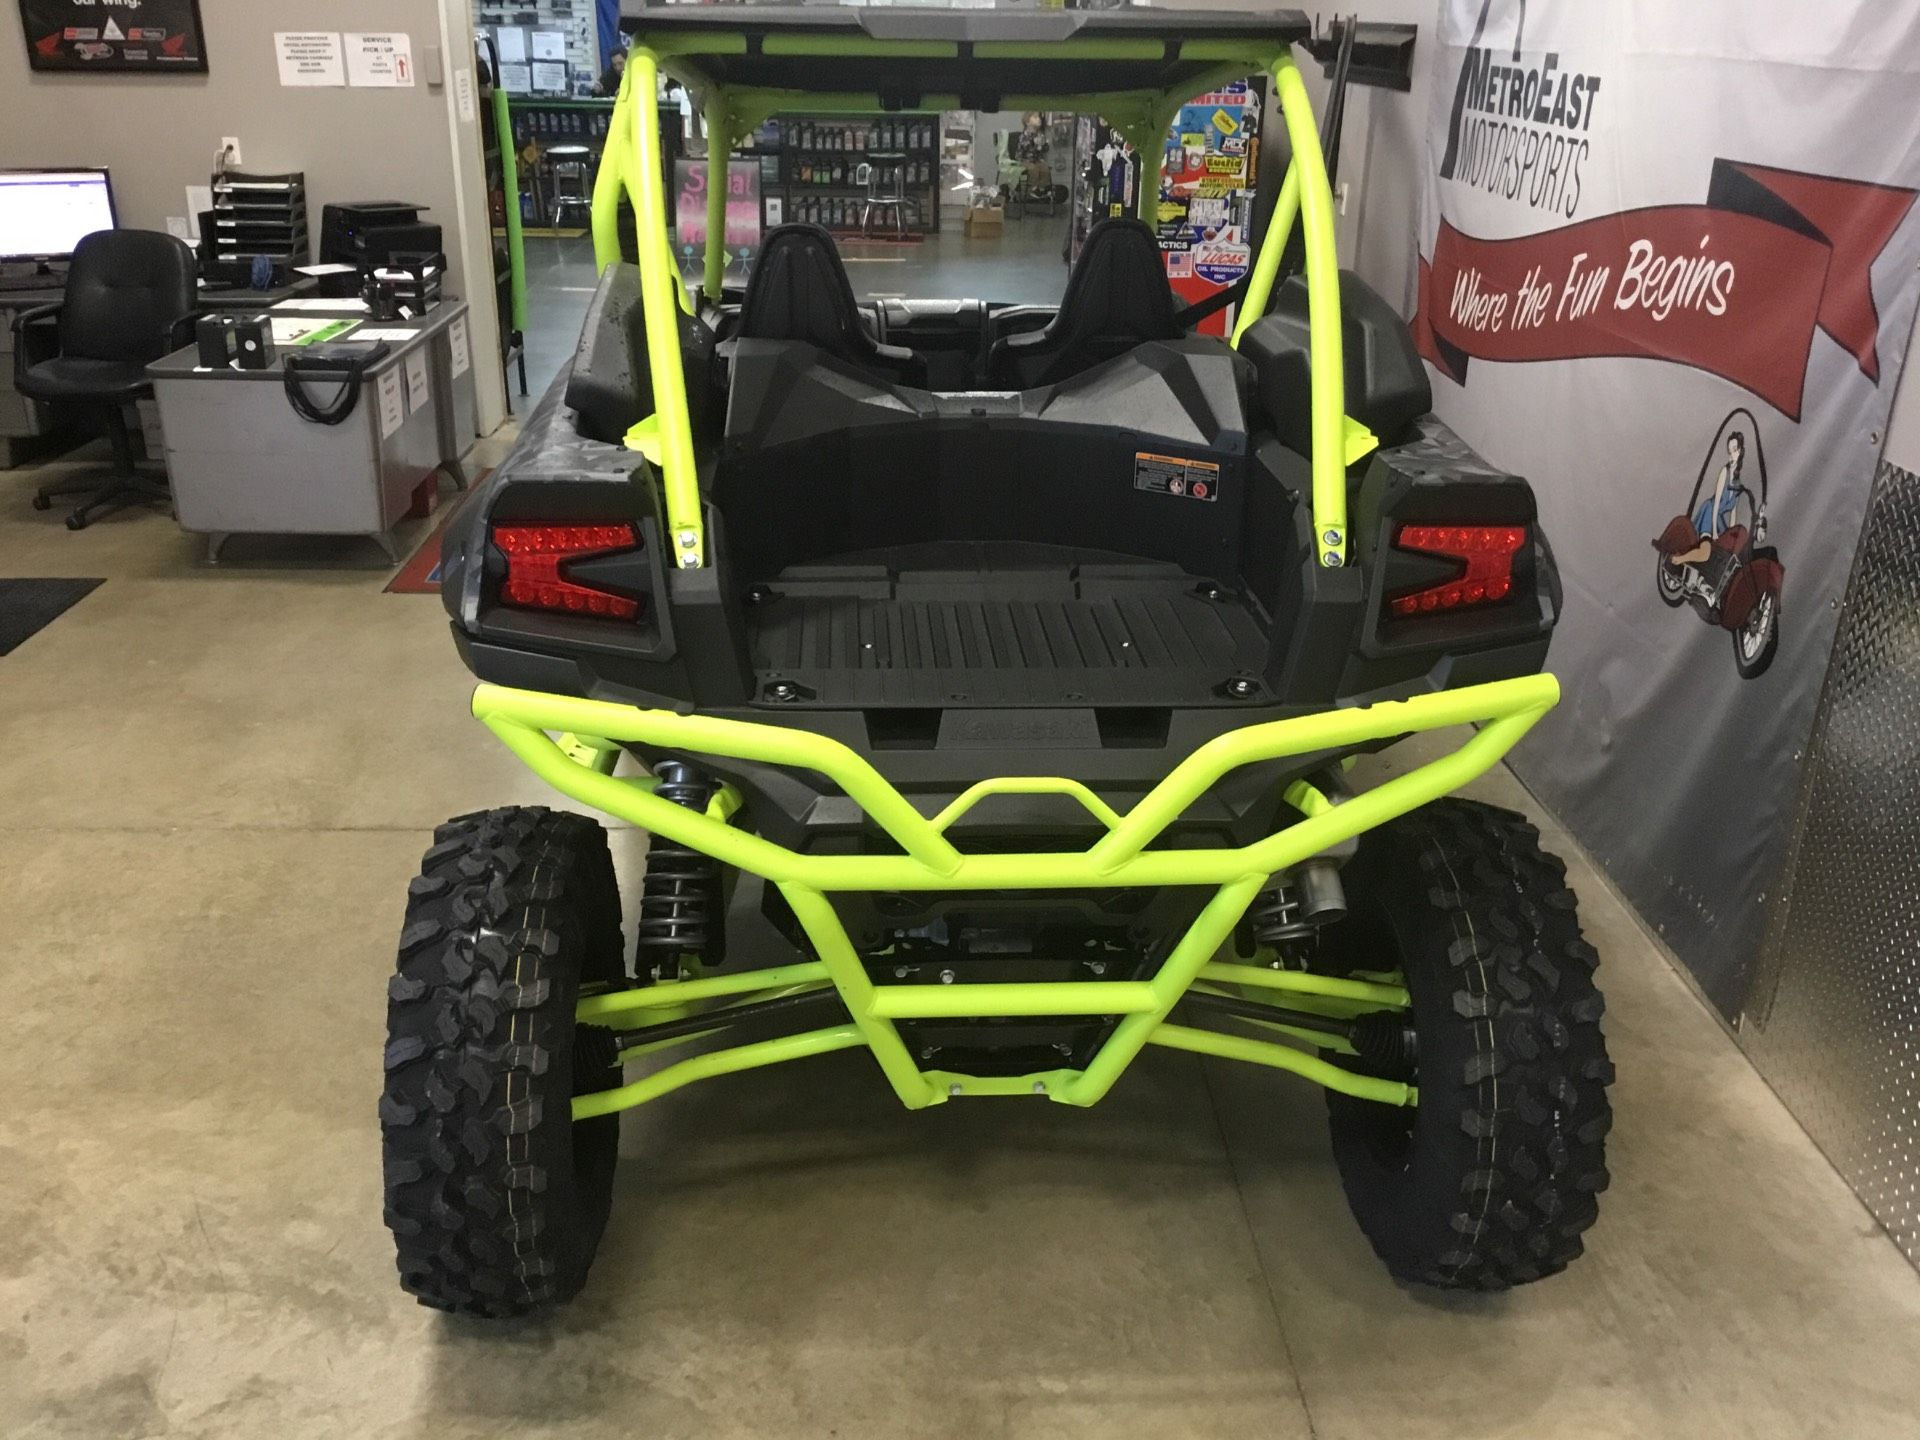 2021 Kawasaki Teryx KRX 1000 Trail Edition in O Fallon, Illinois - Photo 3